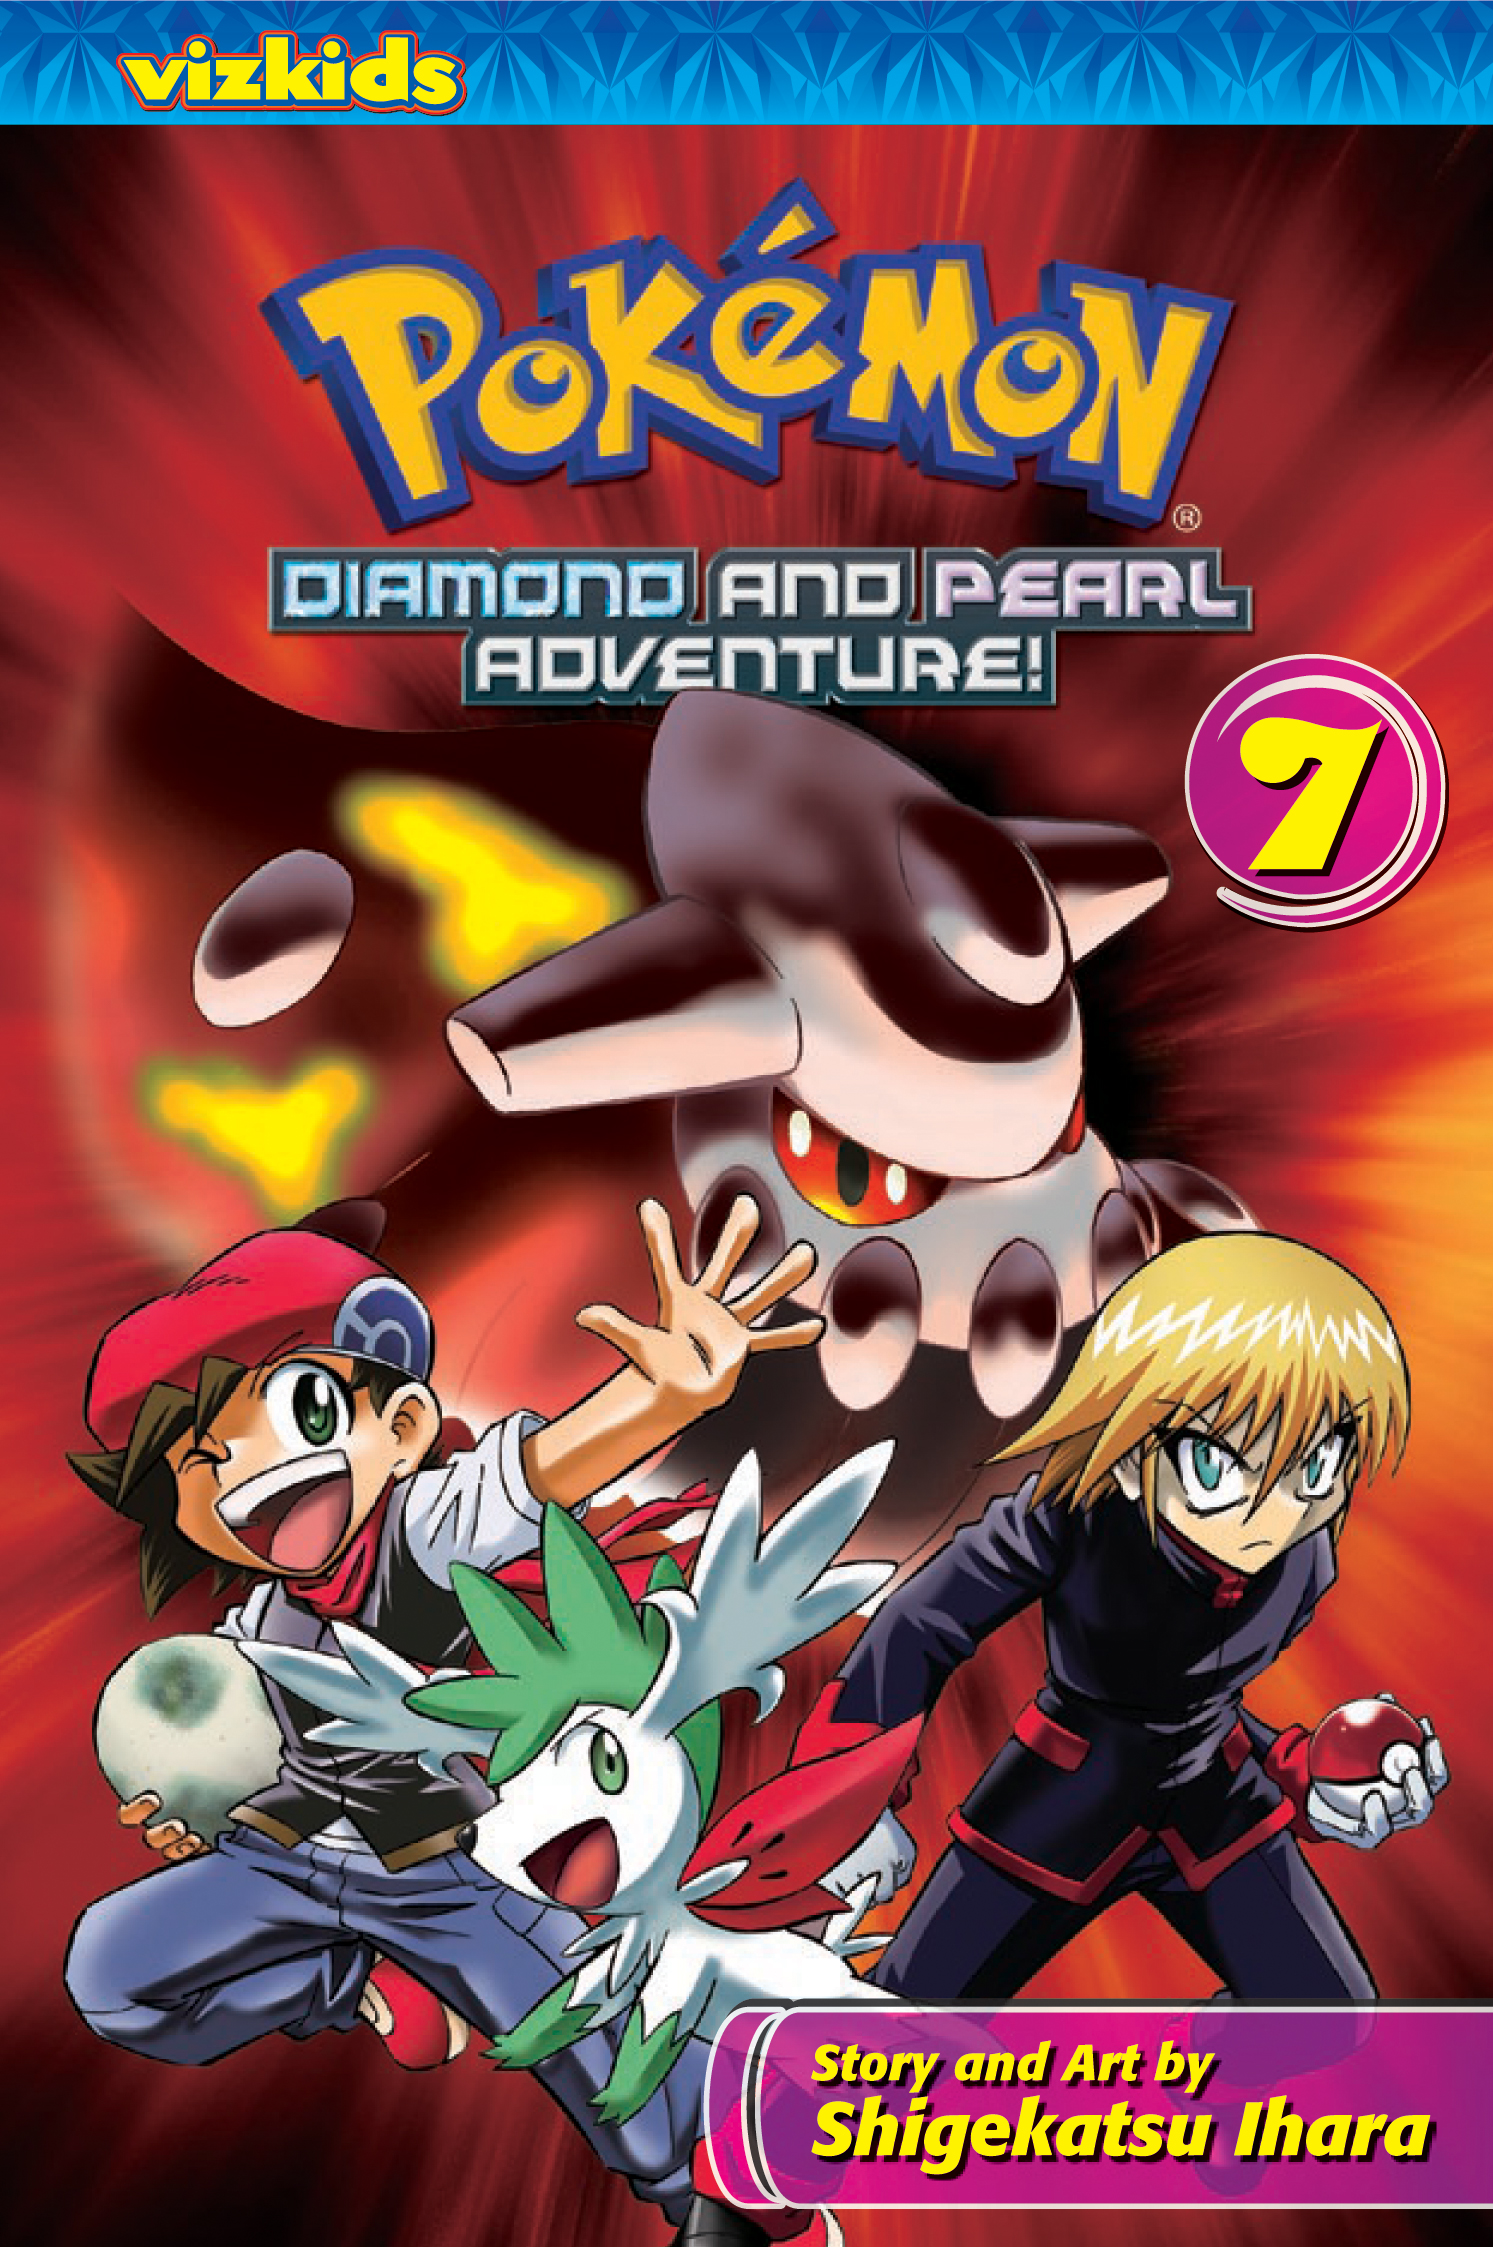 pokémon diamond and pearl adventure!: volume 7 | pokémon wiki